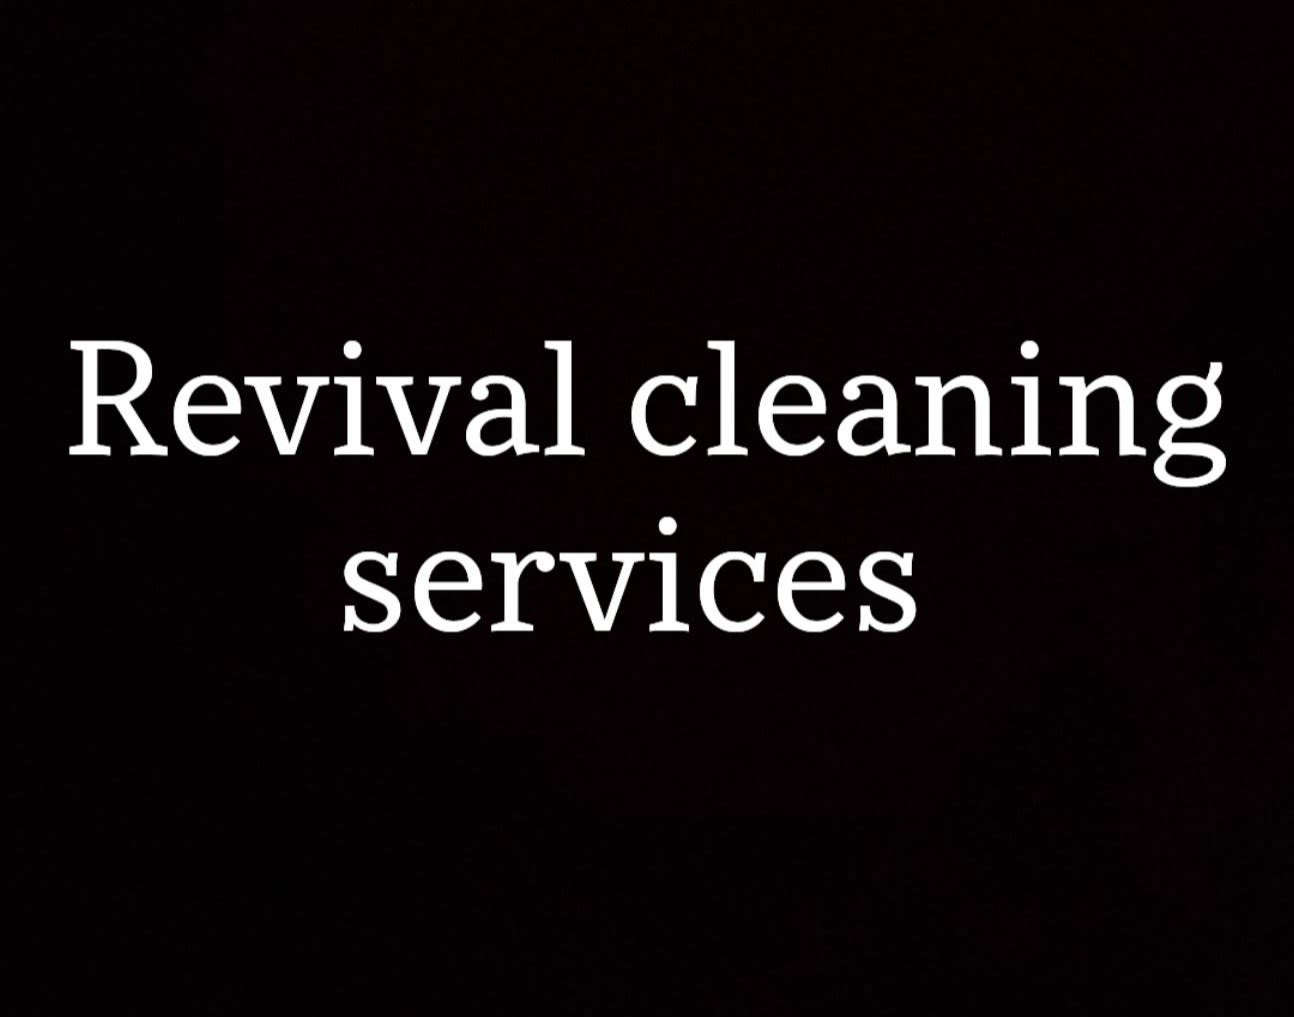 Revival Cleaning Services